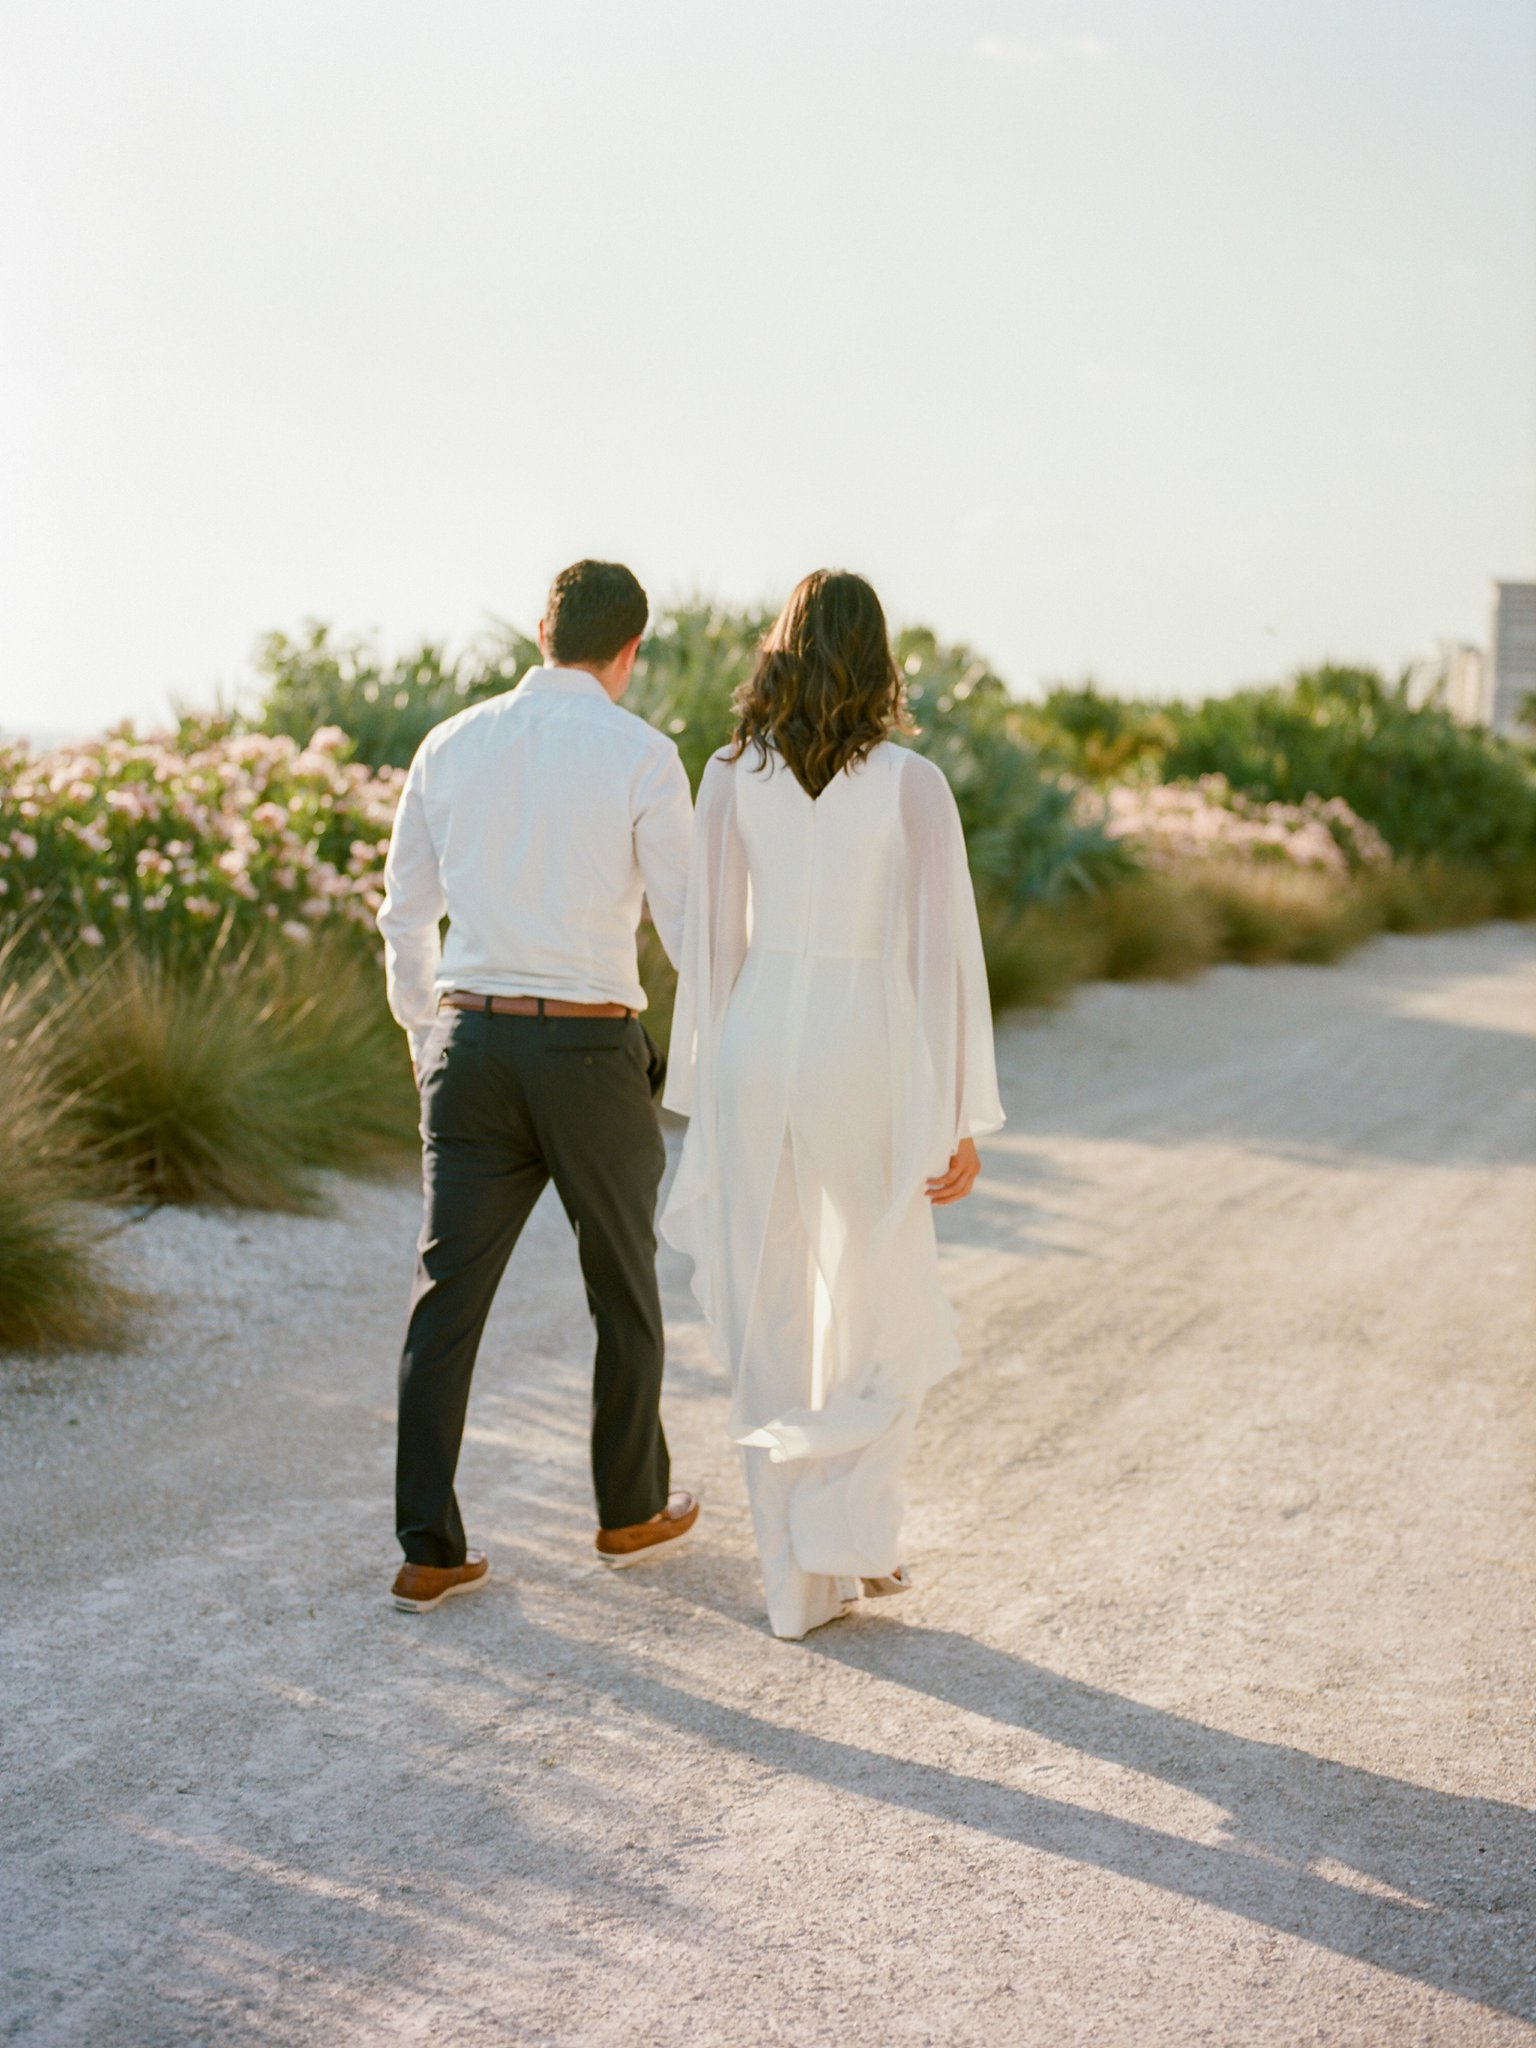 jw marriott marco island engagement session marco island wedding photographer shannon griffin photography_0025.jpg